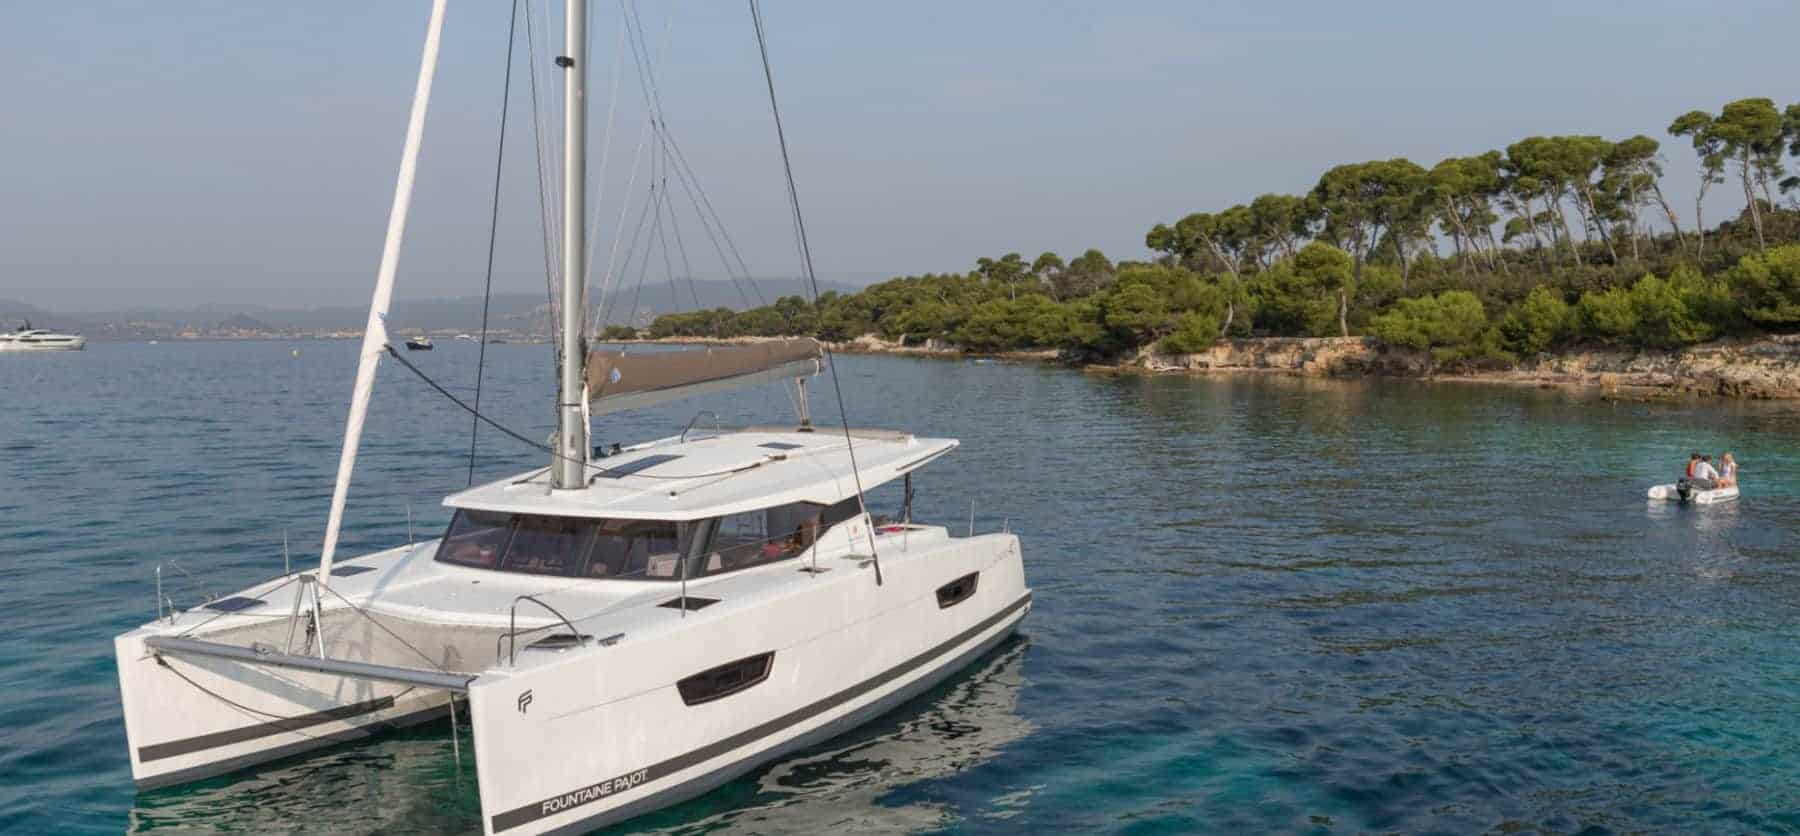 Fountaine Pajot Lucia 40 anchored close to a tropical landscape and a small boat with people in it going to the shoreline